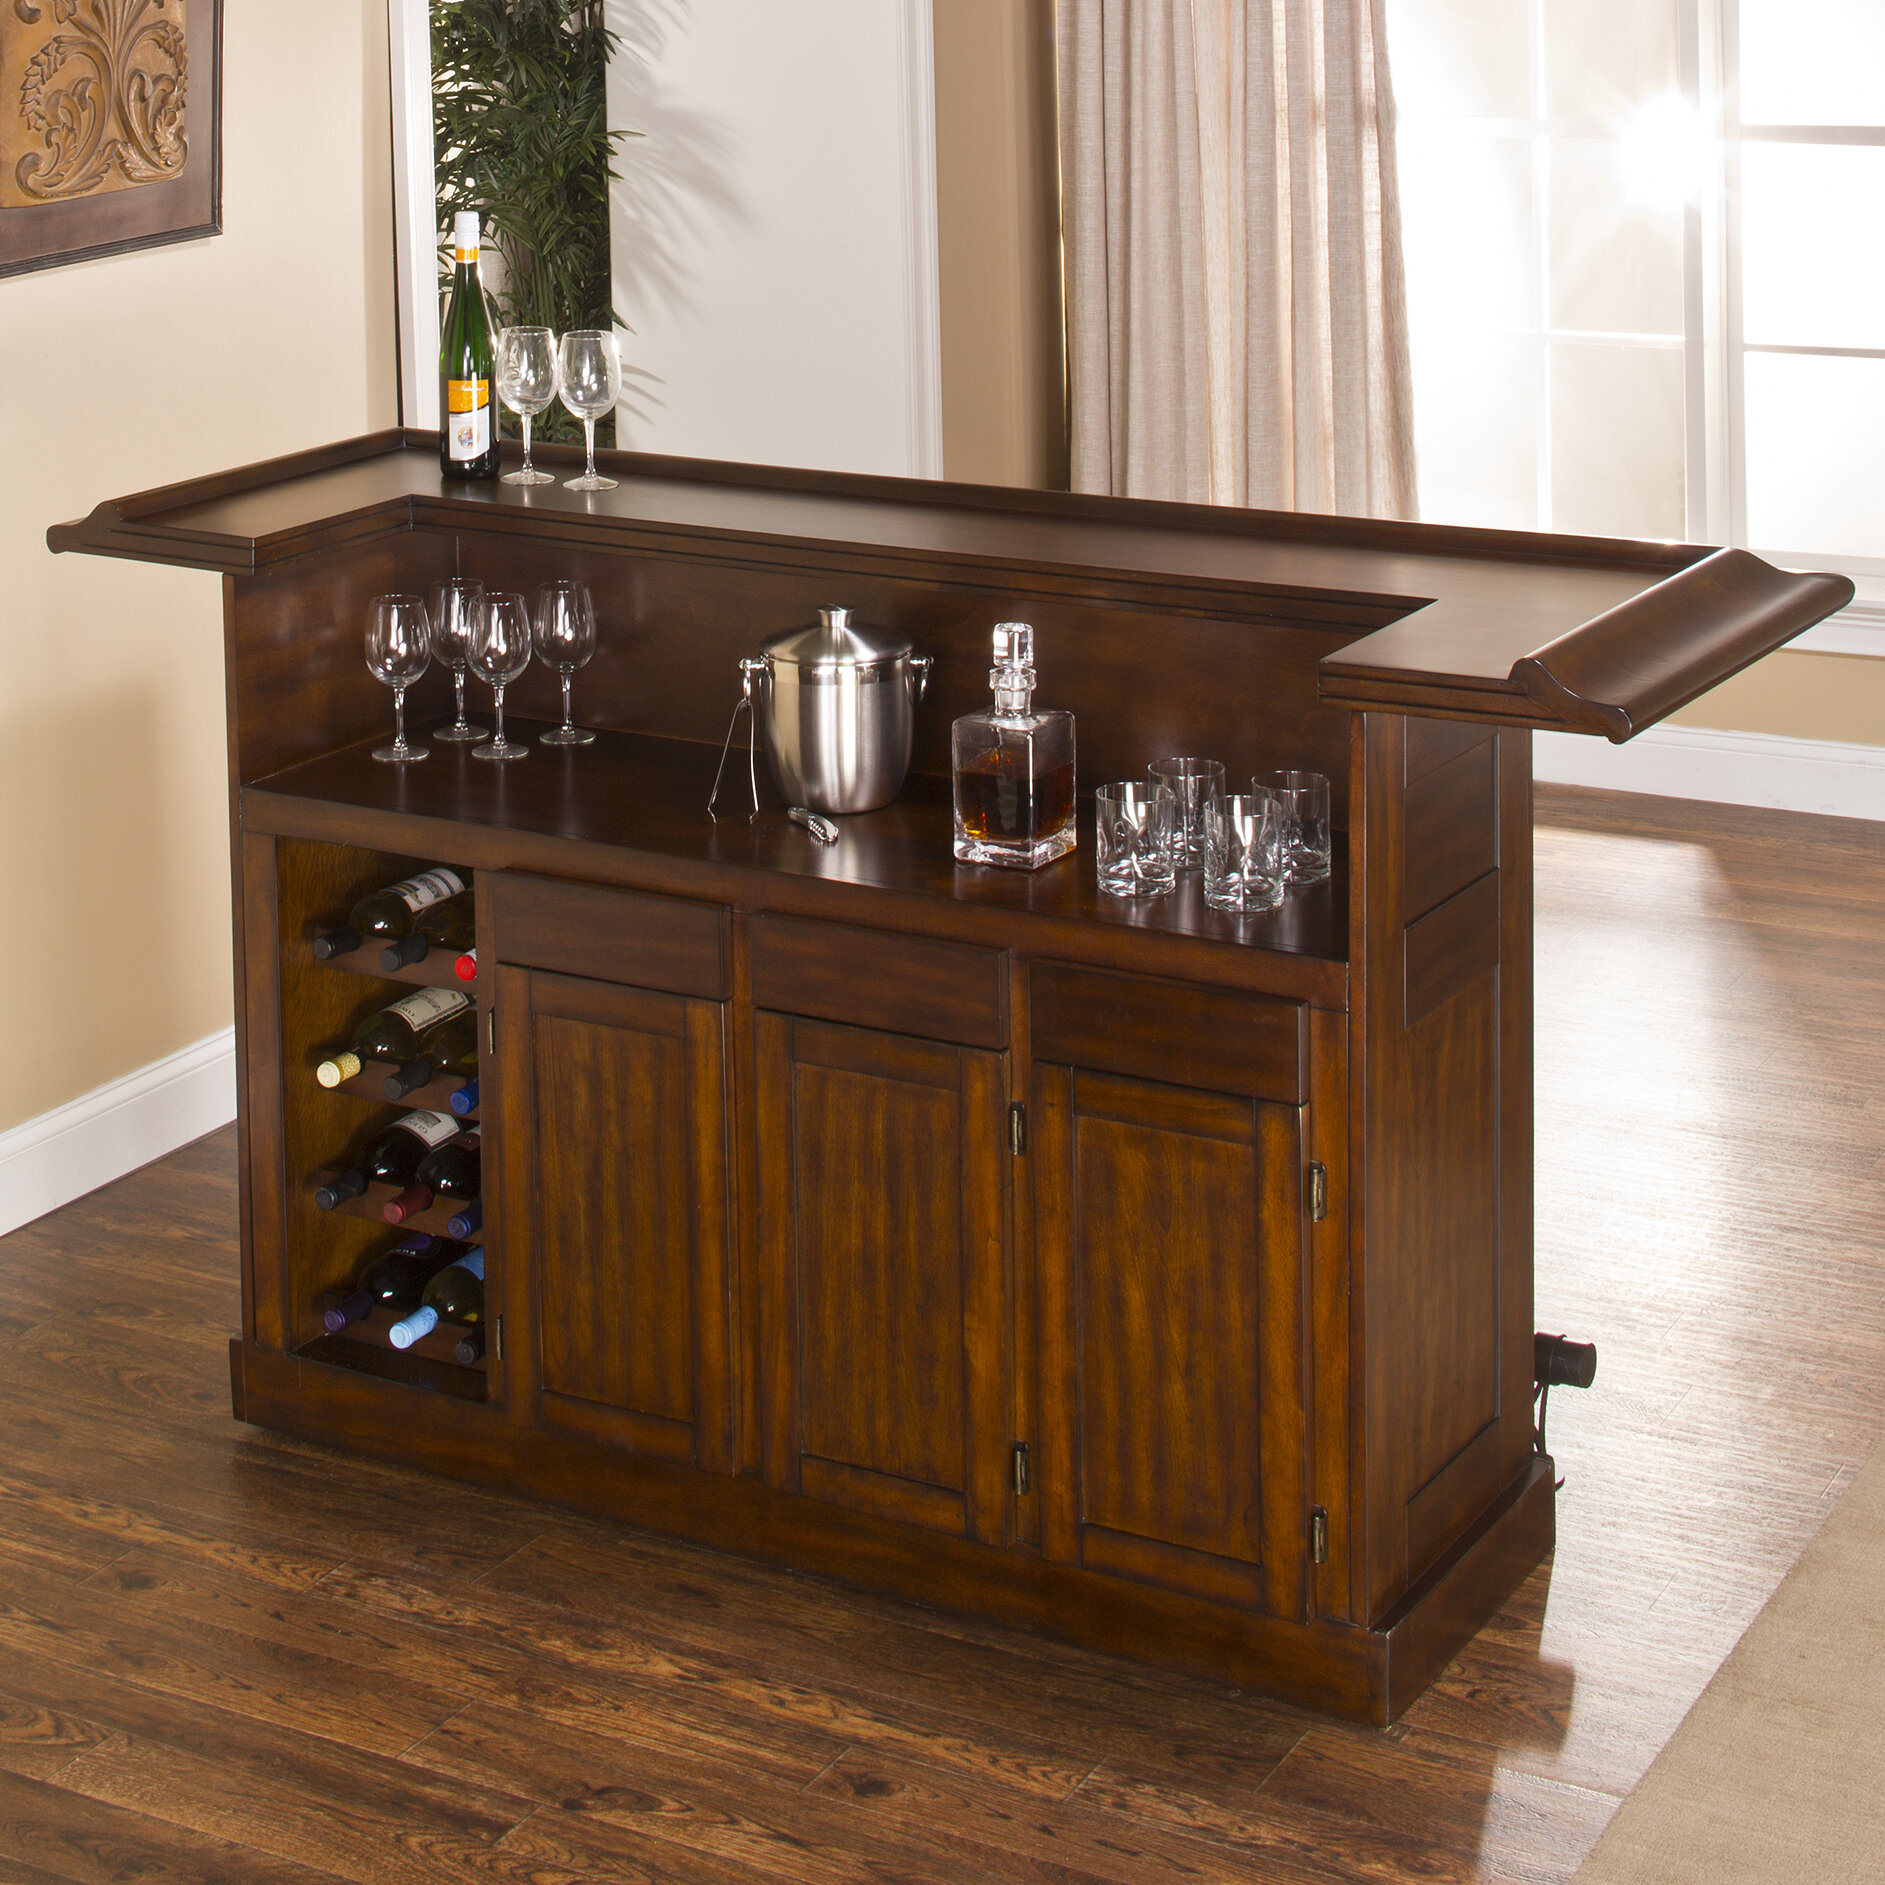 Hillsdale furniture classic home bar ebay for Bar at home furniture